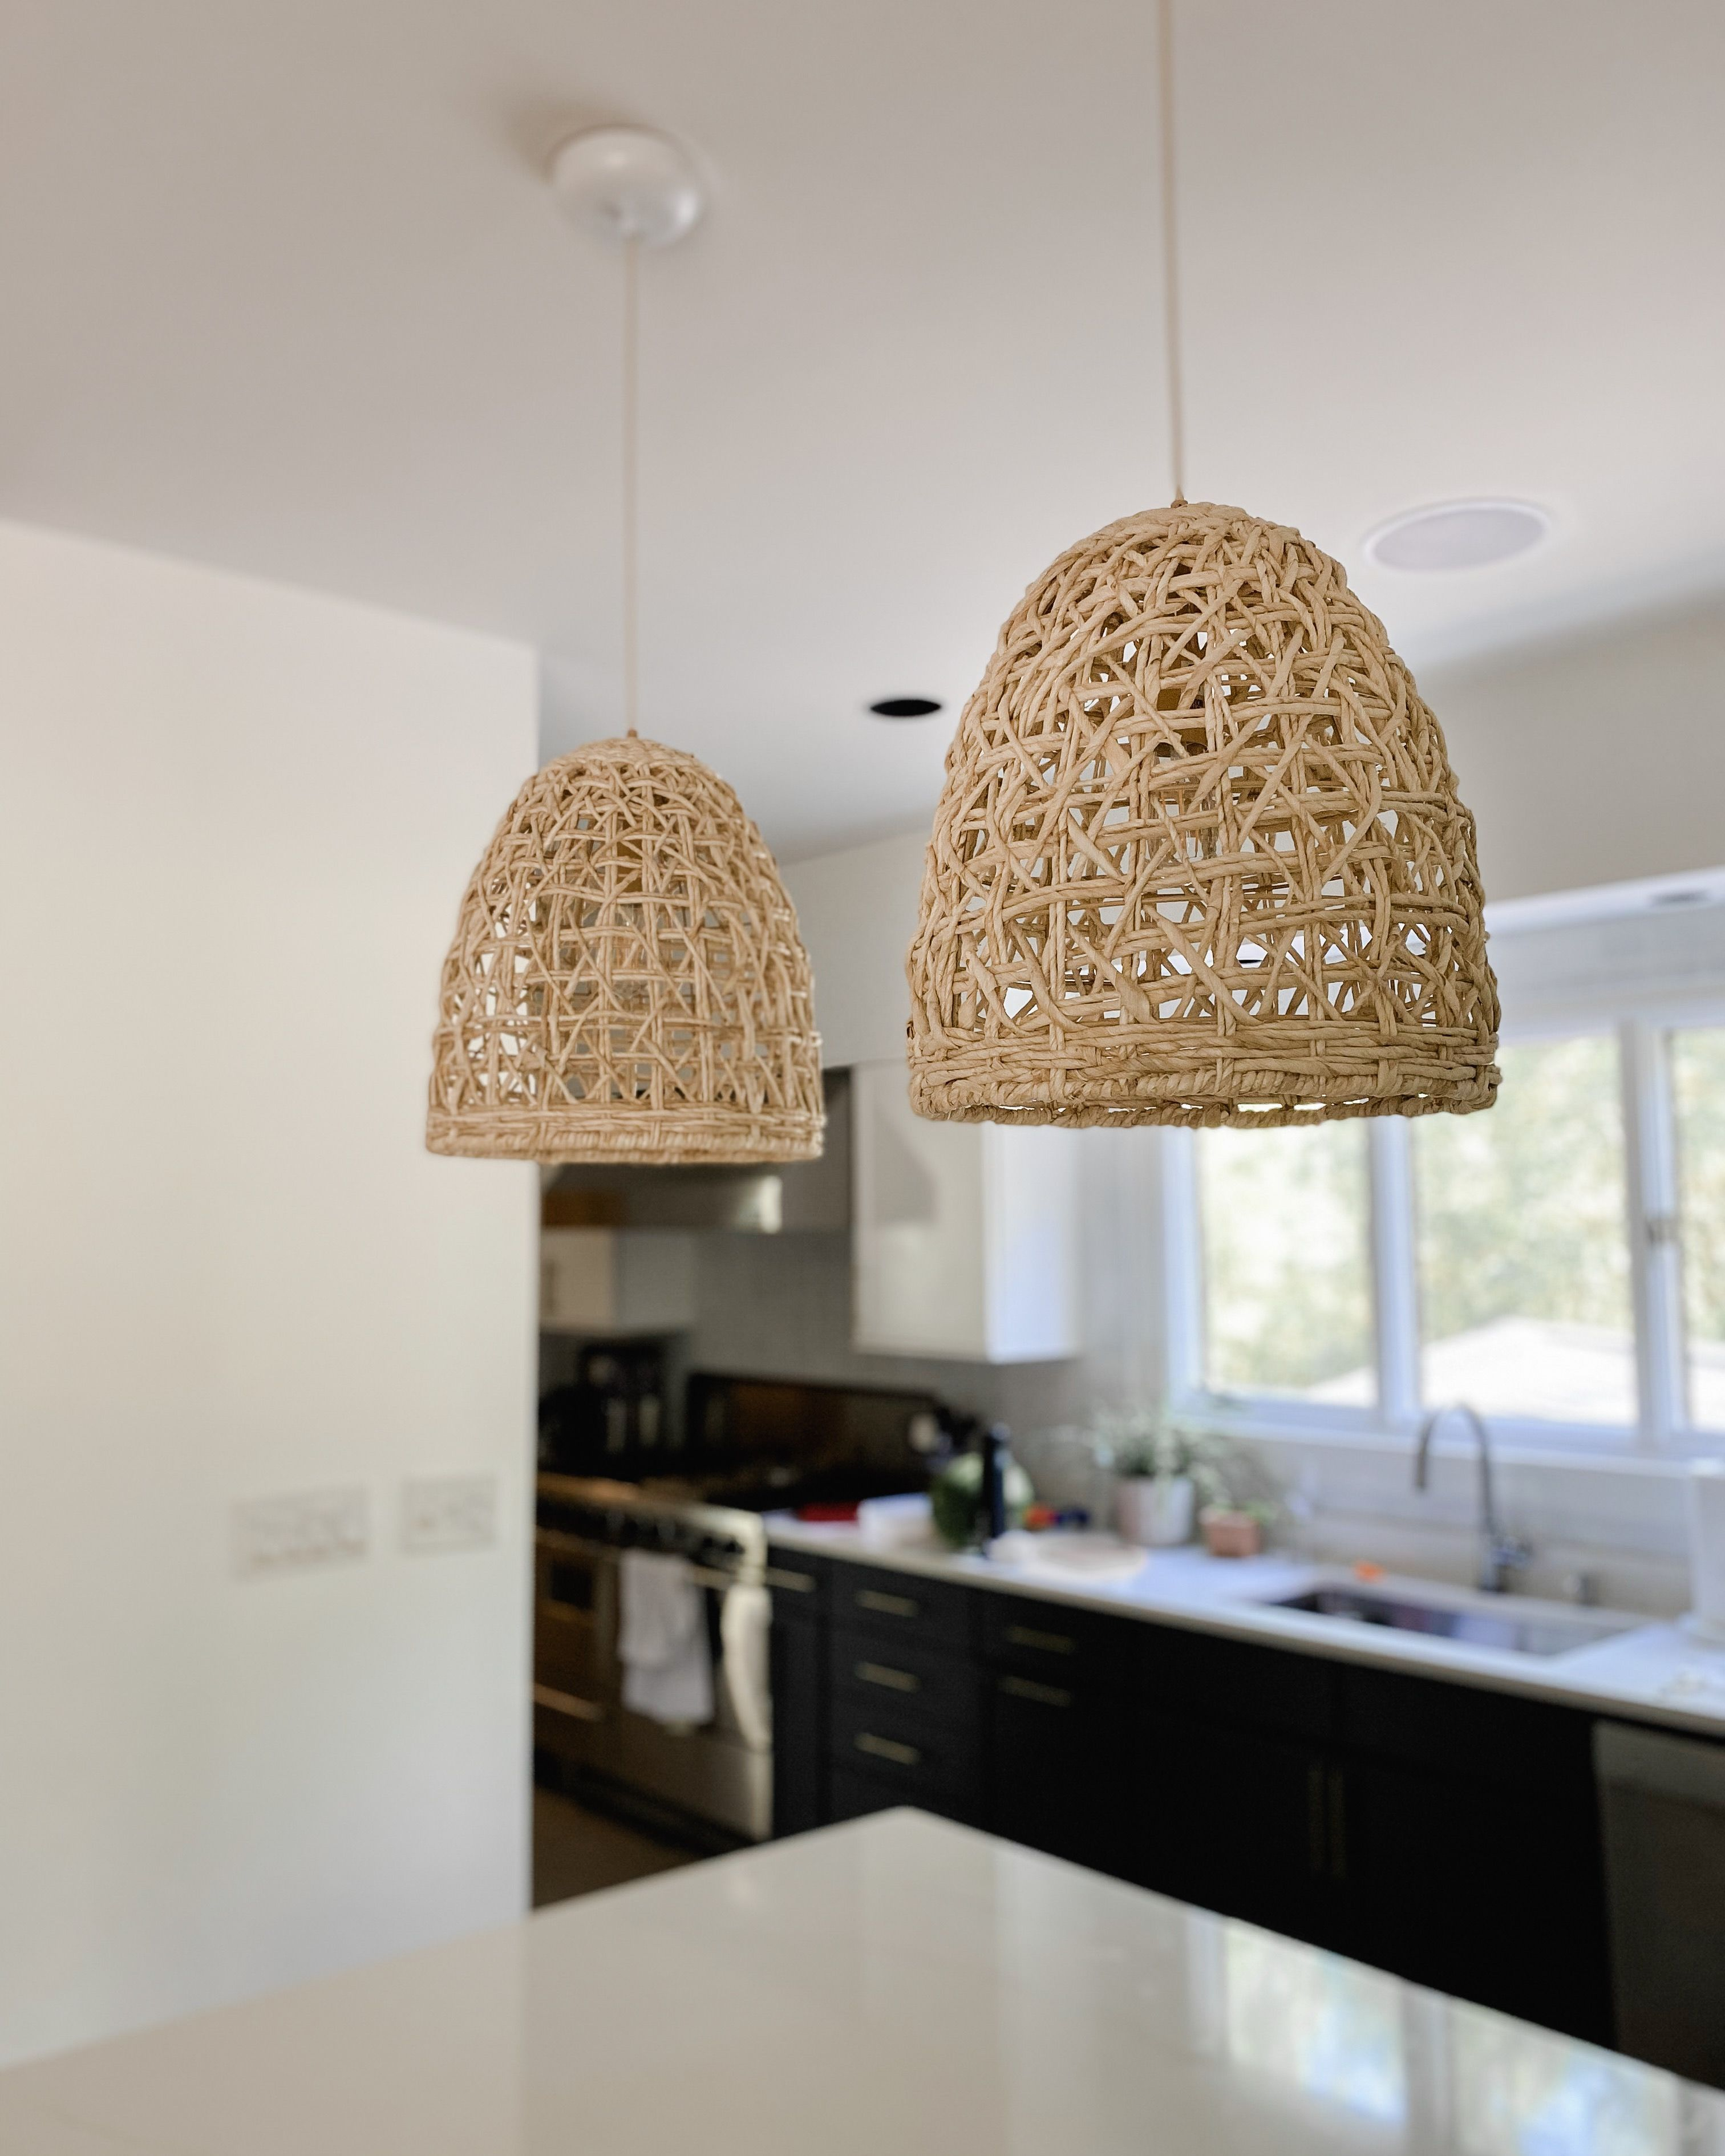 These seagrass pendant lights are great for the kitchen island or over the kitchen sink. They can also be used in other places within your home like your bedroom or living room. If you are working on a new diy project, here is a great idea for adding texture into any room. #Pendantlight #kitchenisland #kitchenpendant #rattanpendant #farmhousependantlight #farmhouse #farmhousekitchen #diykitchen #remodel